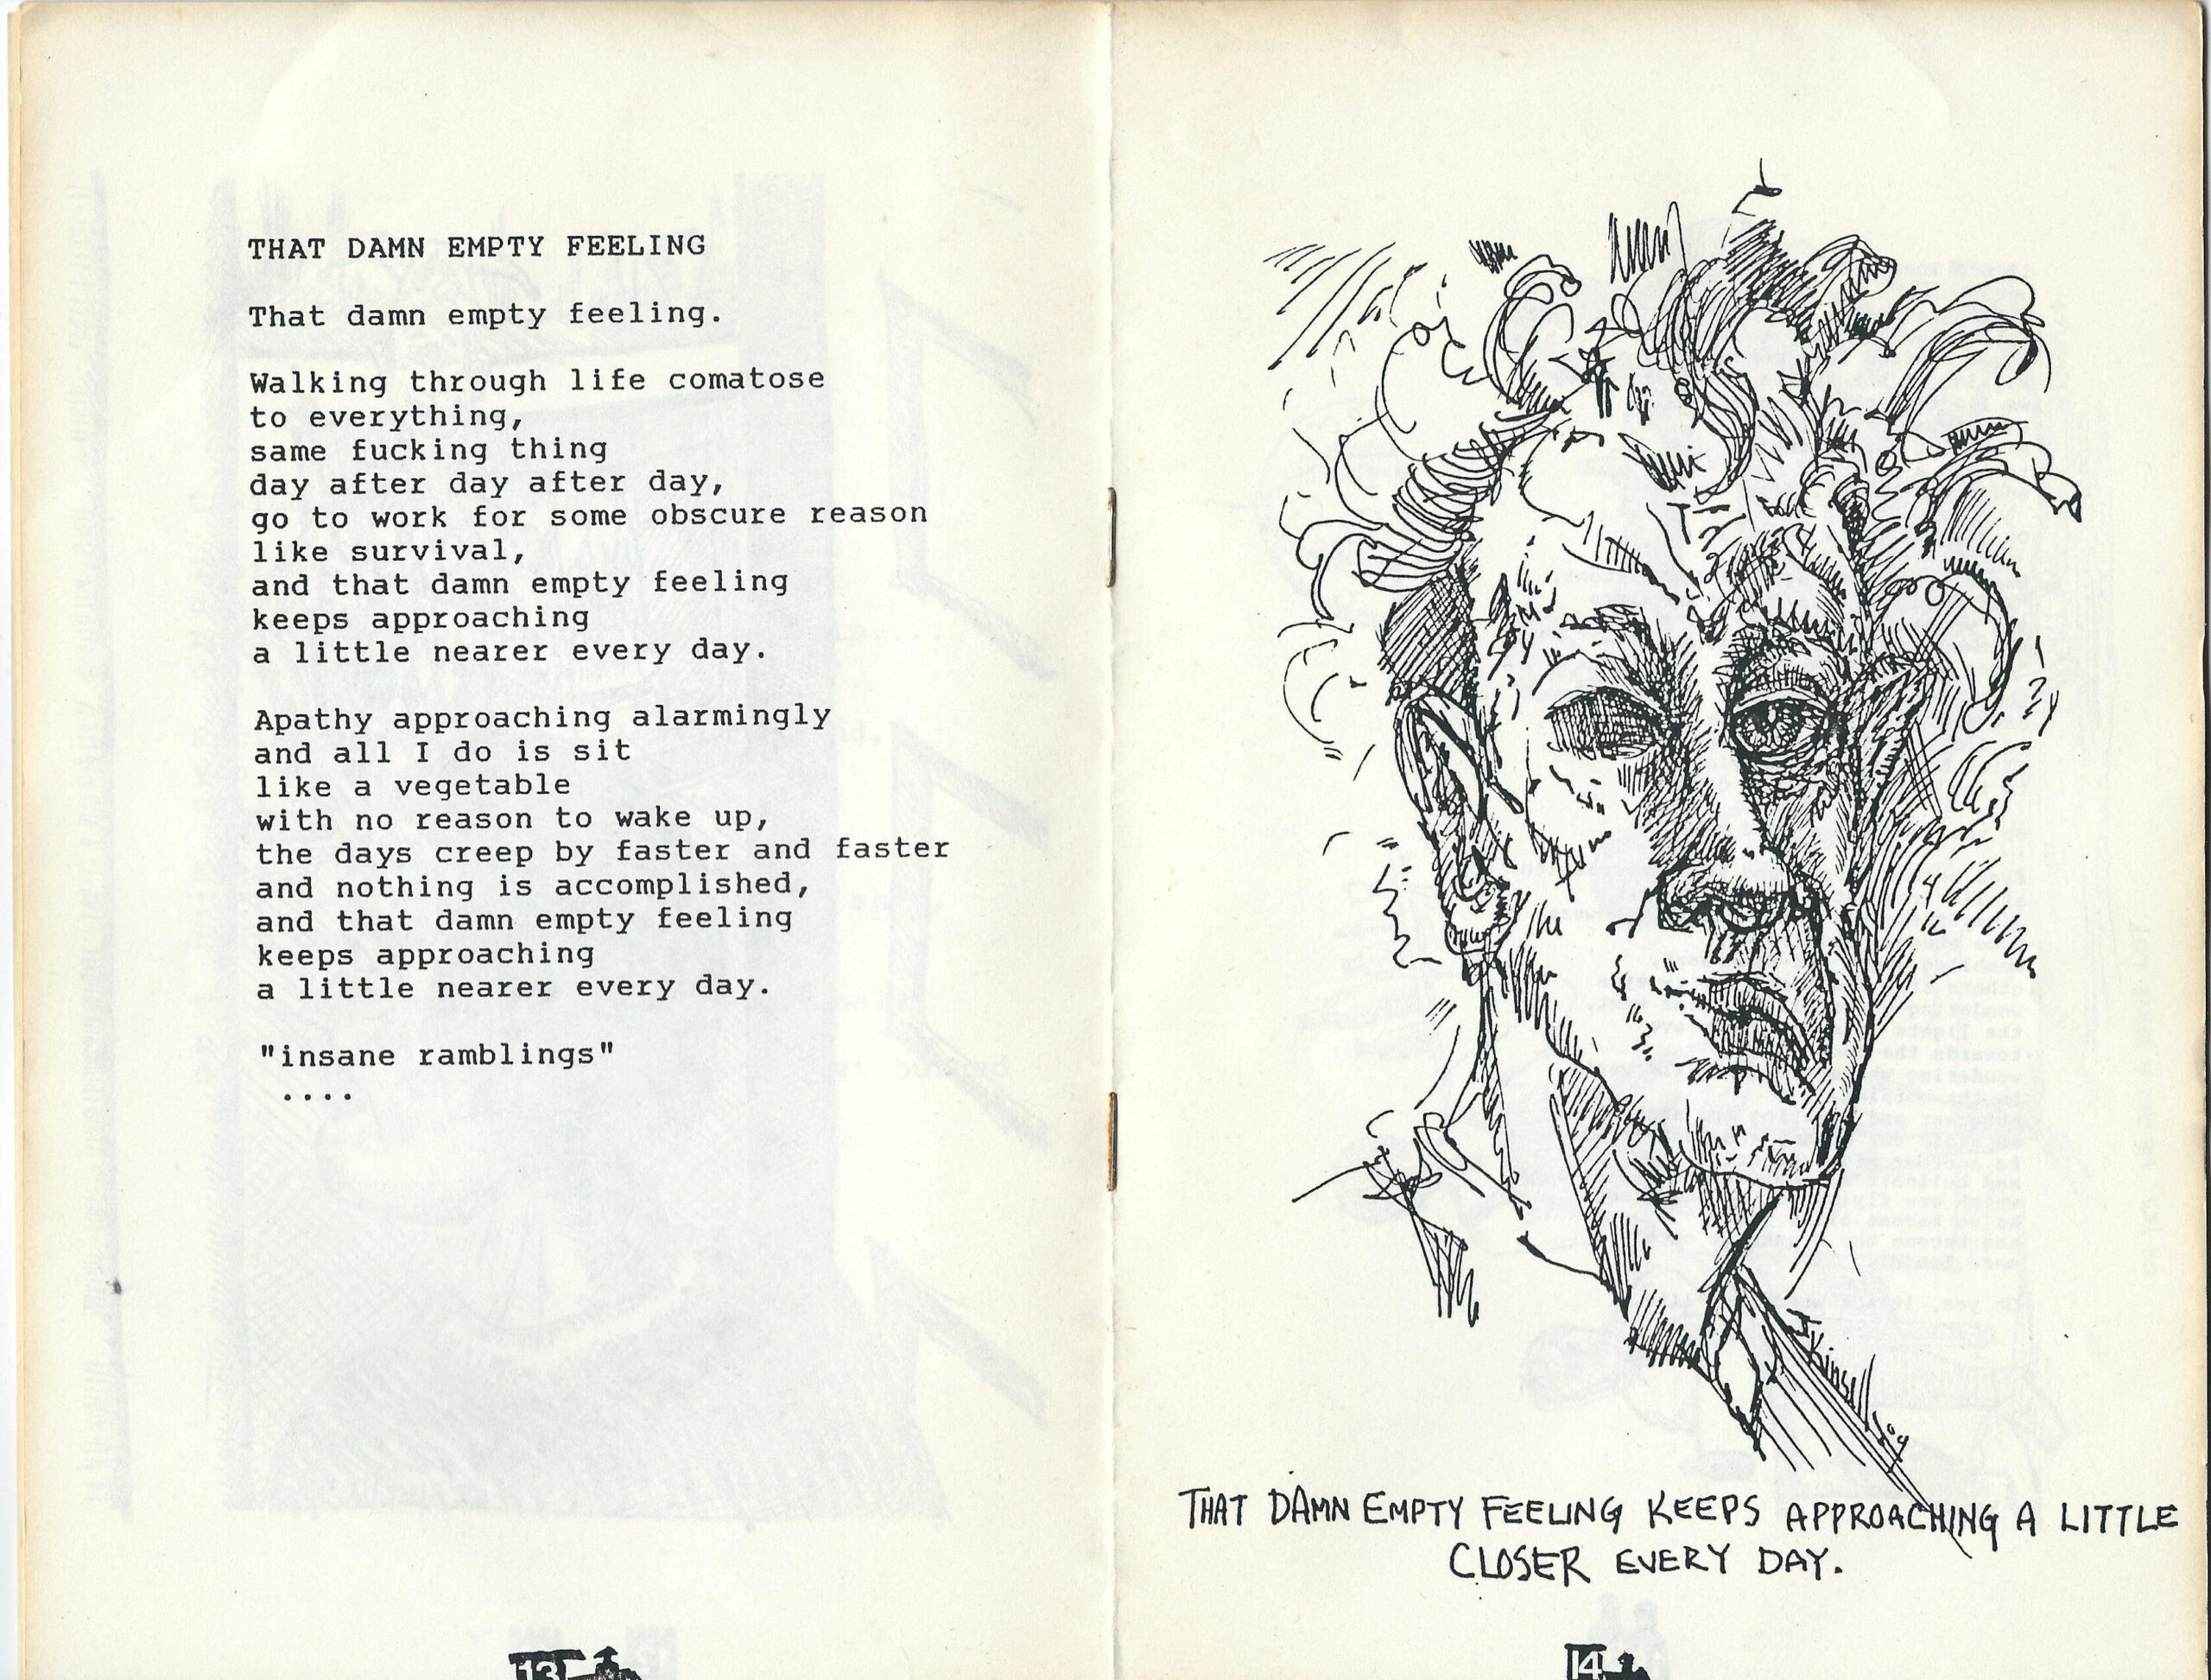 Damn Empty Feeling - drawing by John Kinsella 1989